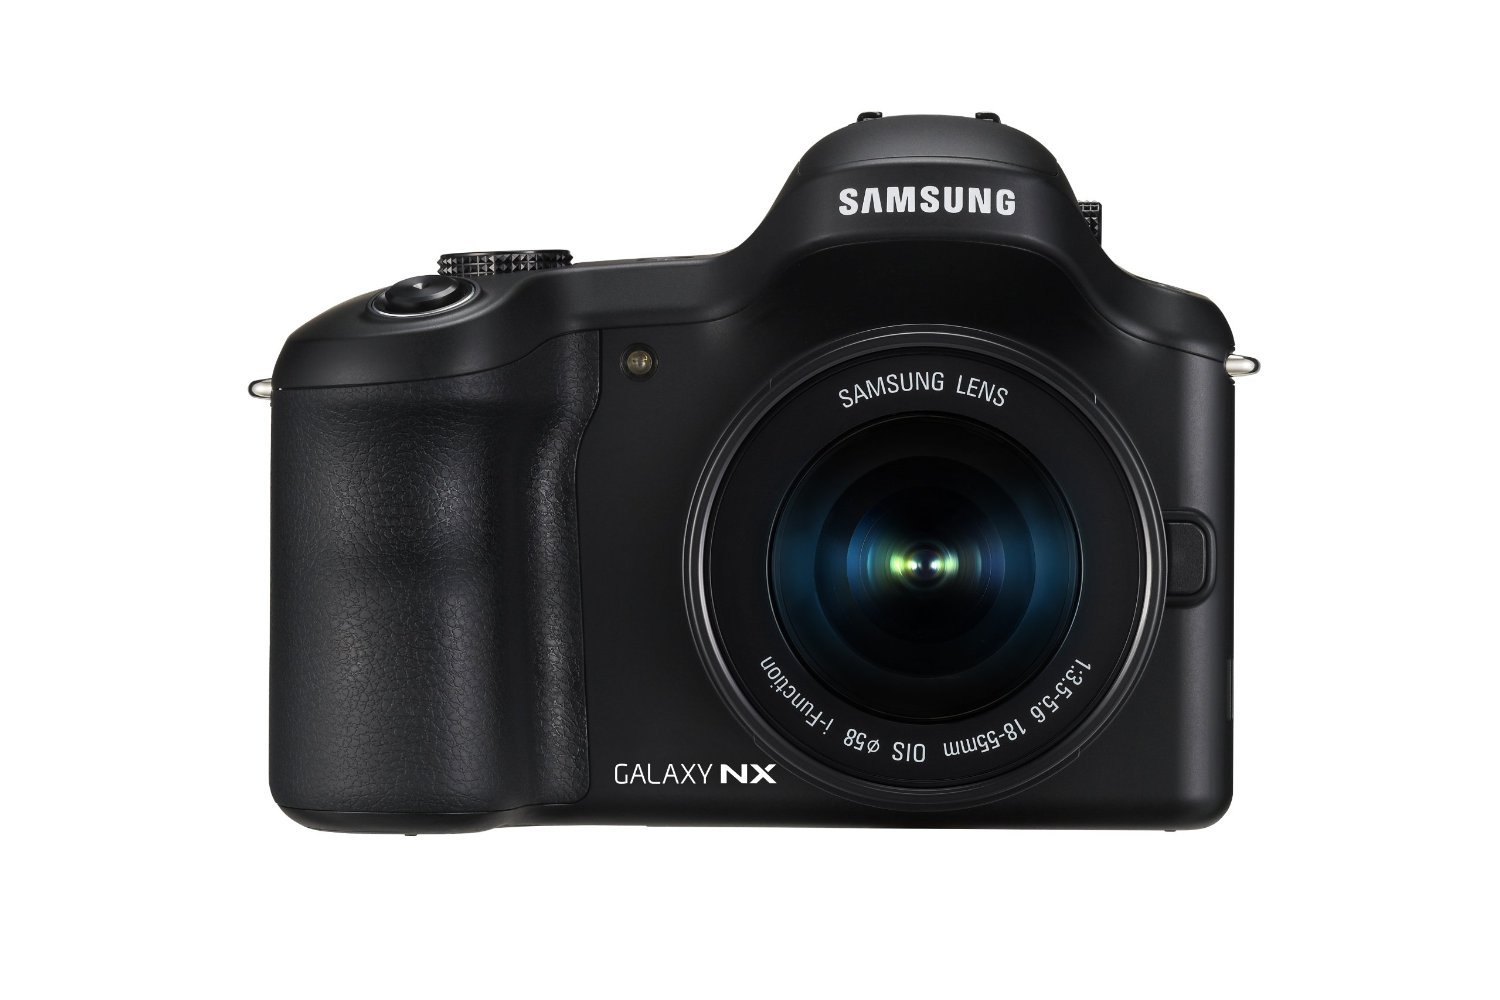 Samsung Galaxy NX EK-GN120ZKAXAR Galaxy Wireless Smart Android 4G Camera 20.3MP Mirrorless Digital Camera with 4.8-Inch LCD with 18-55mm OIS Lens (Black)